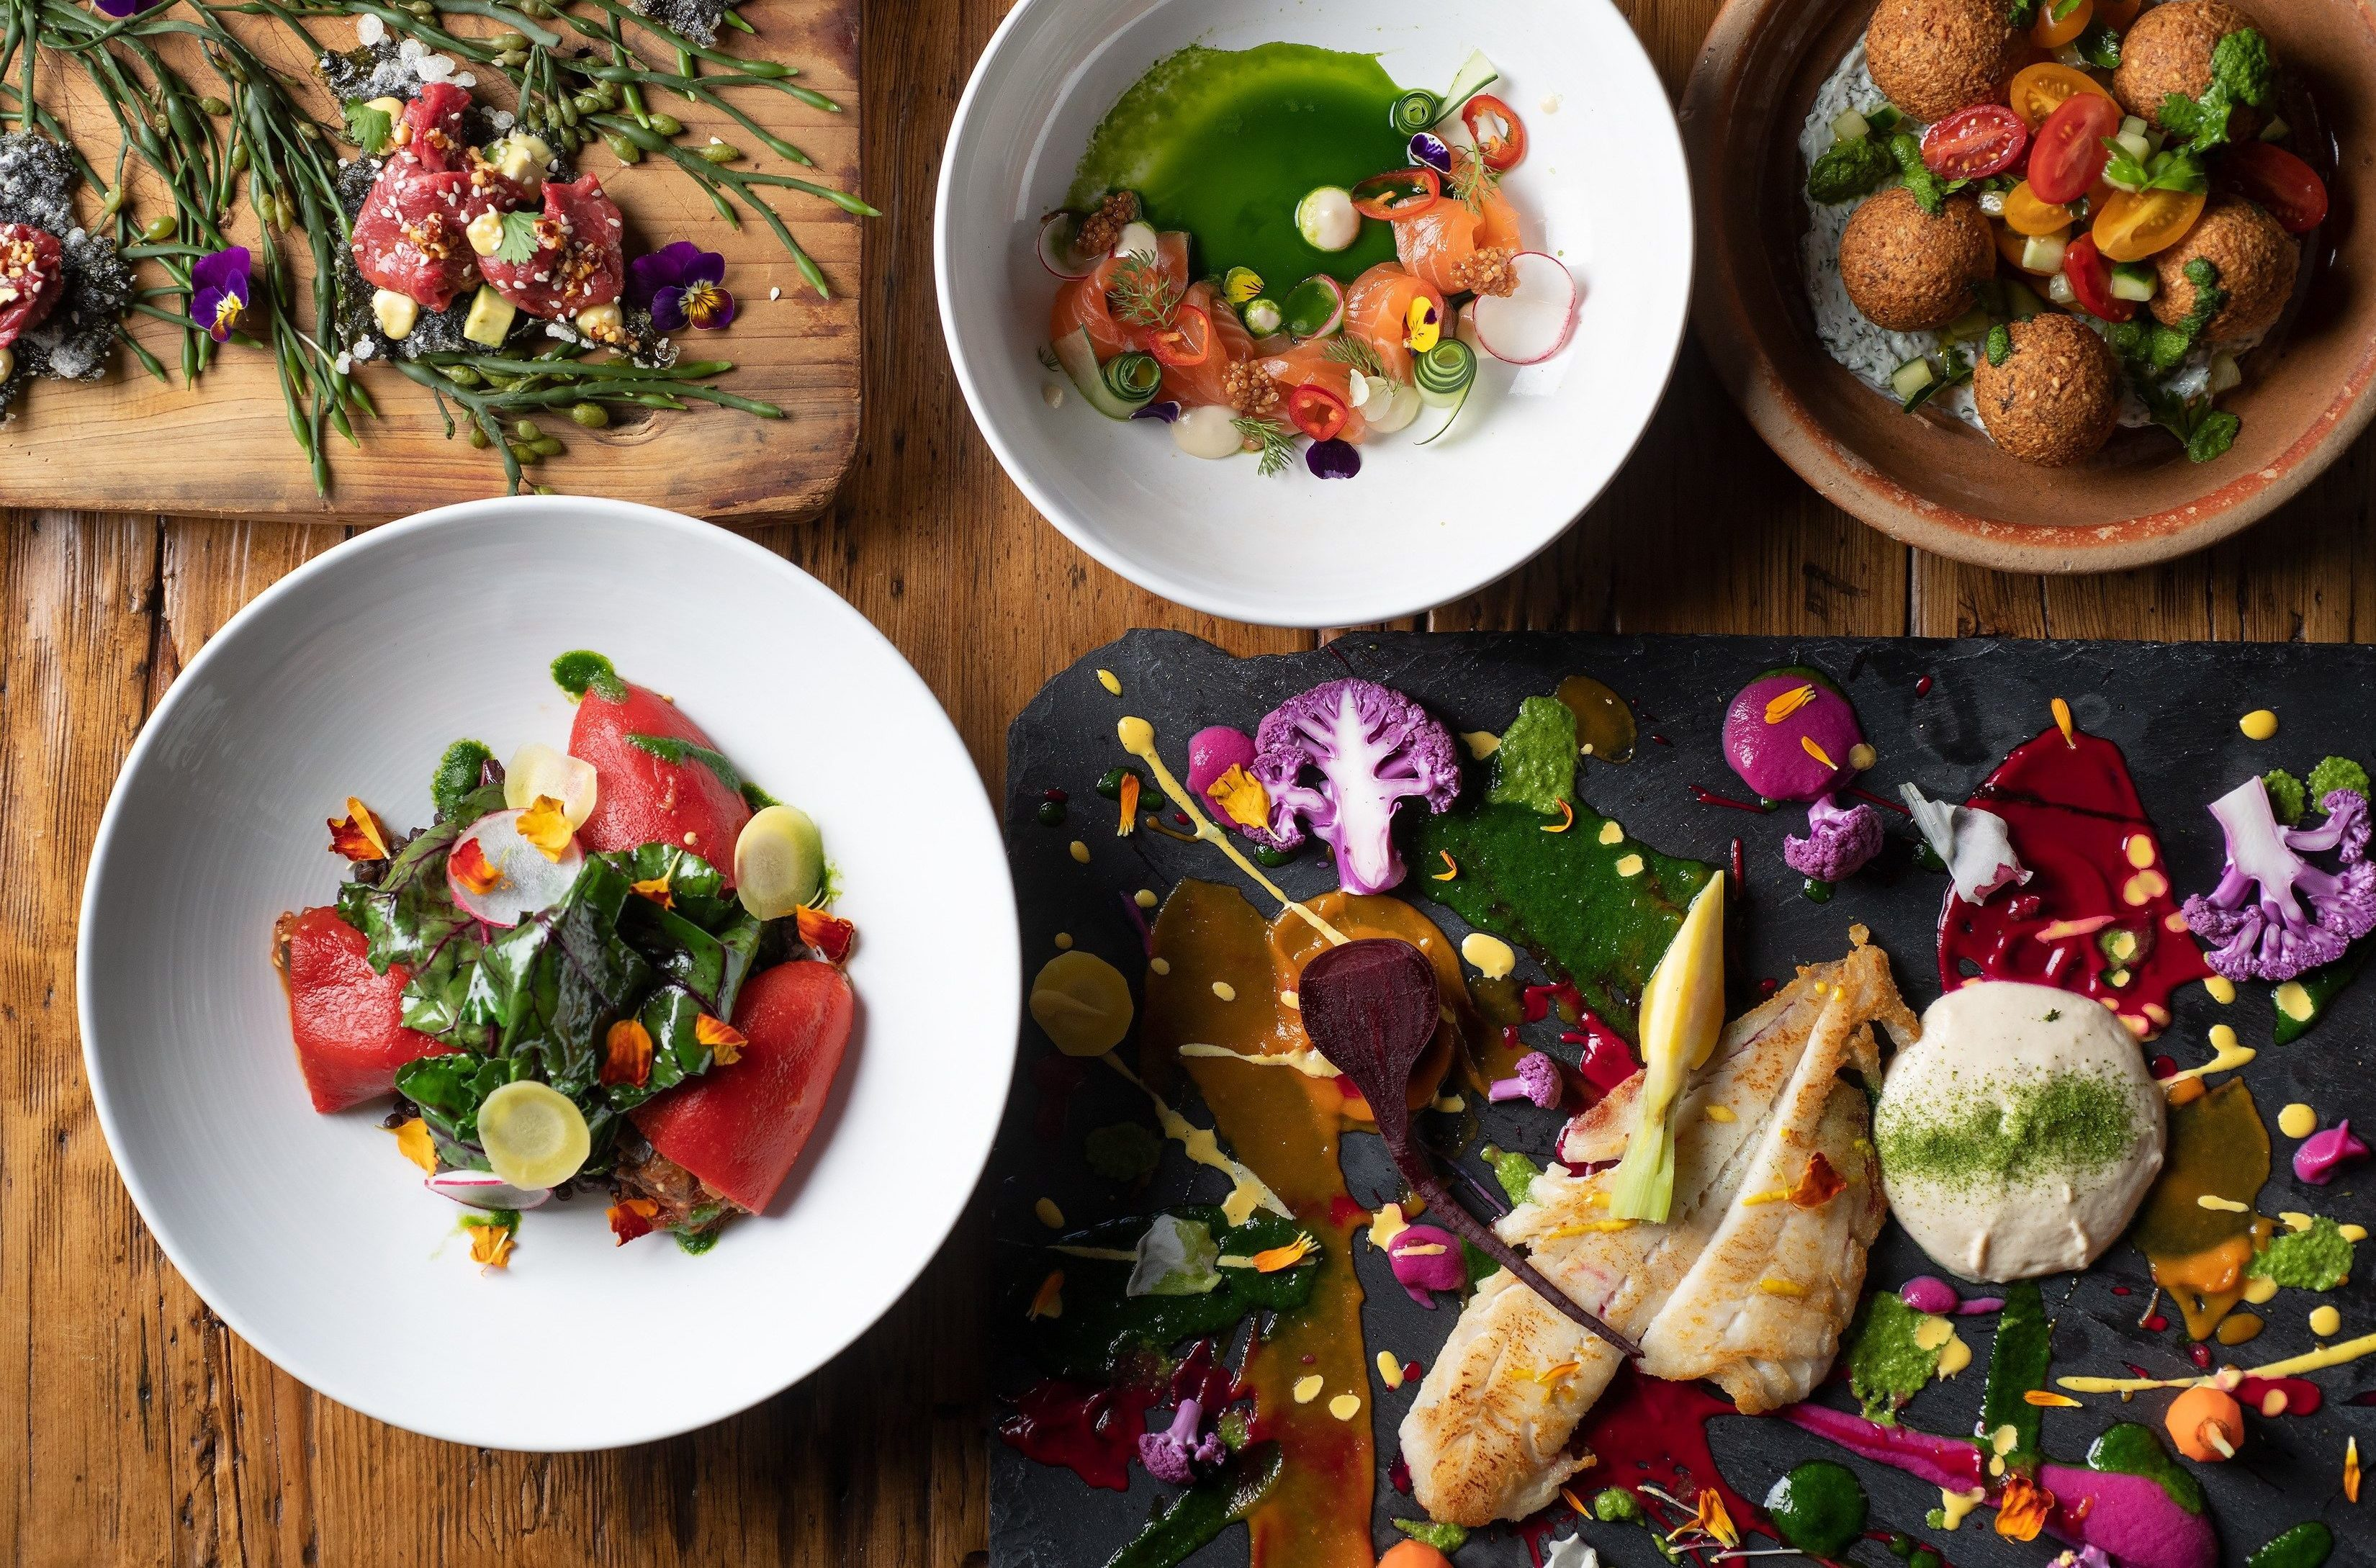 Colorful Plates of food on table